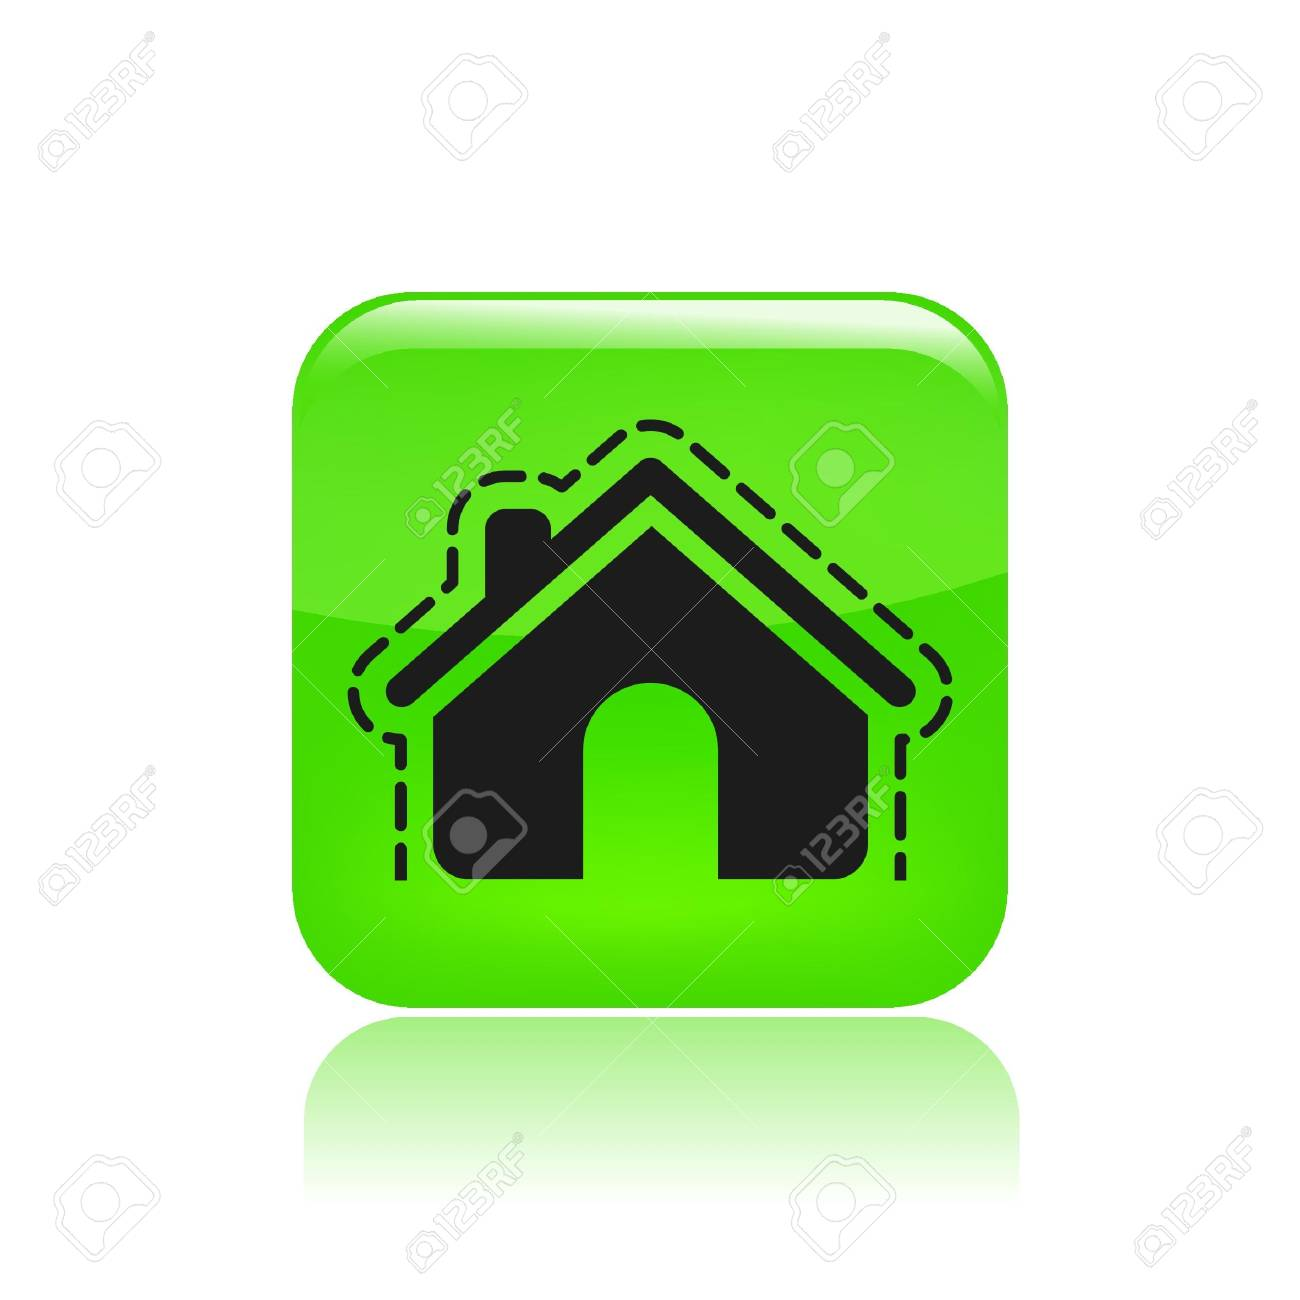 Vector illustration of modern icon depicting a house protection Stock Vector - 10545503